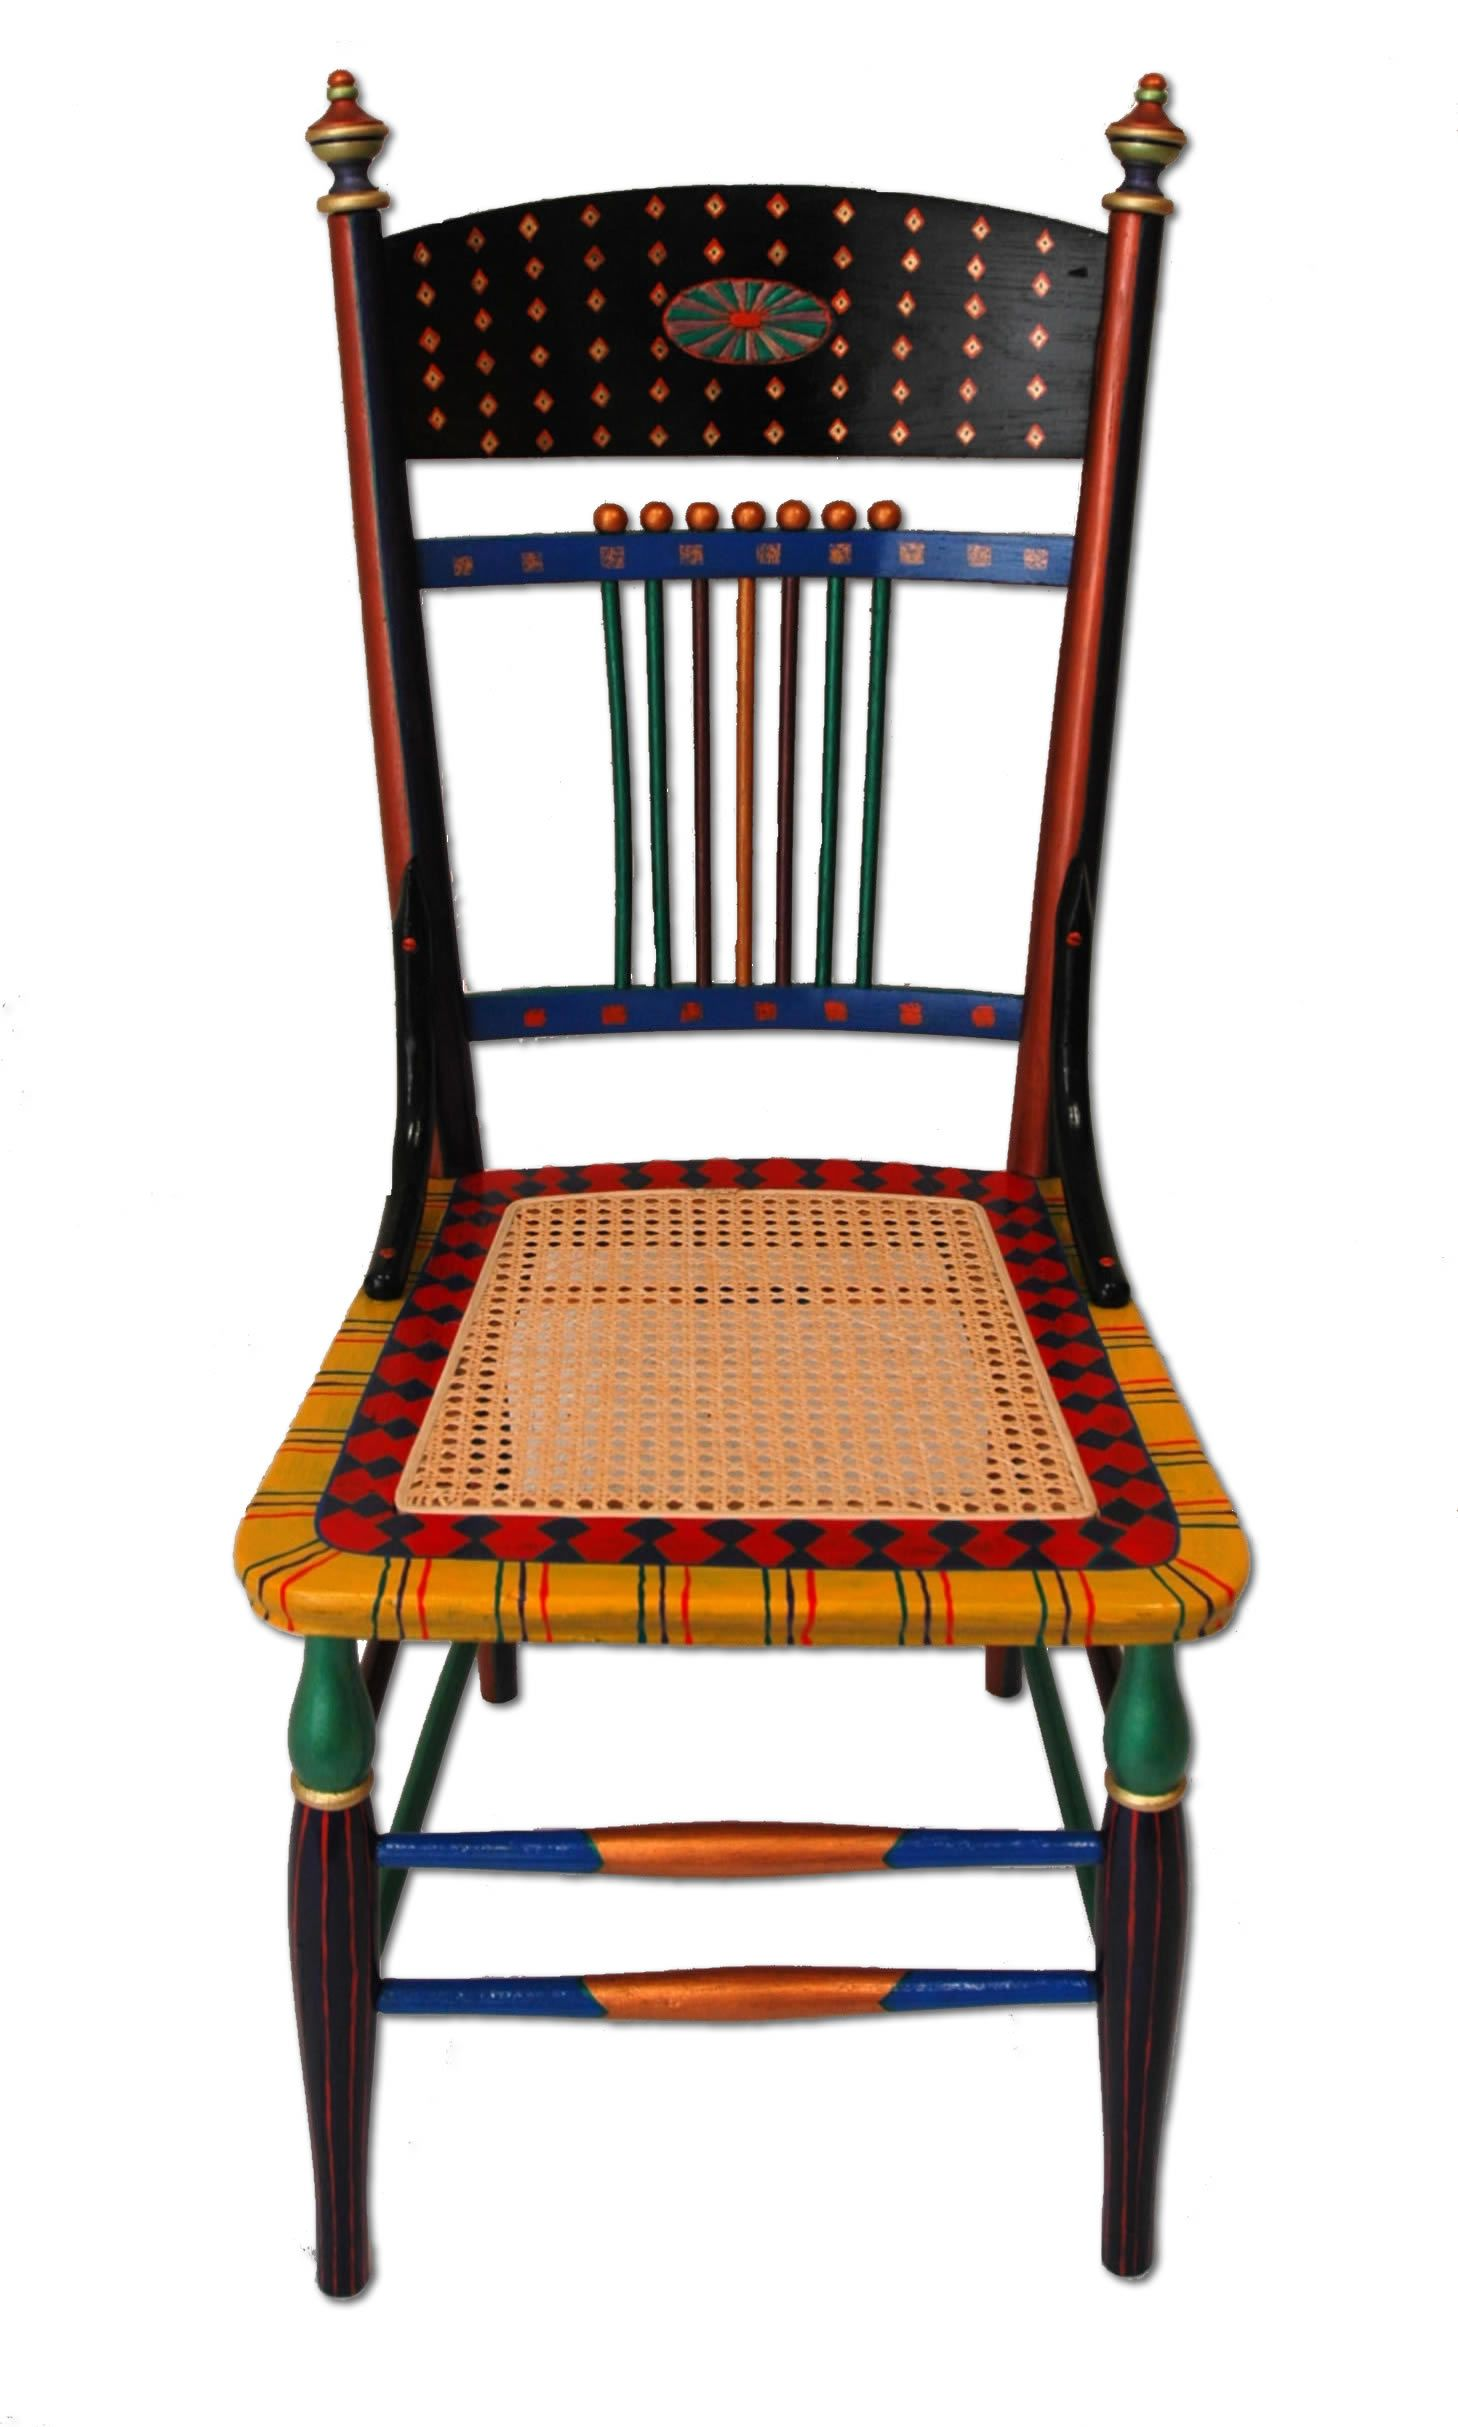 Hand Painted Chairs | Custom Hand Painted Furniture With A Bright, Happy,  Whimsical